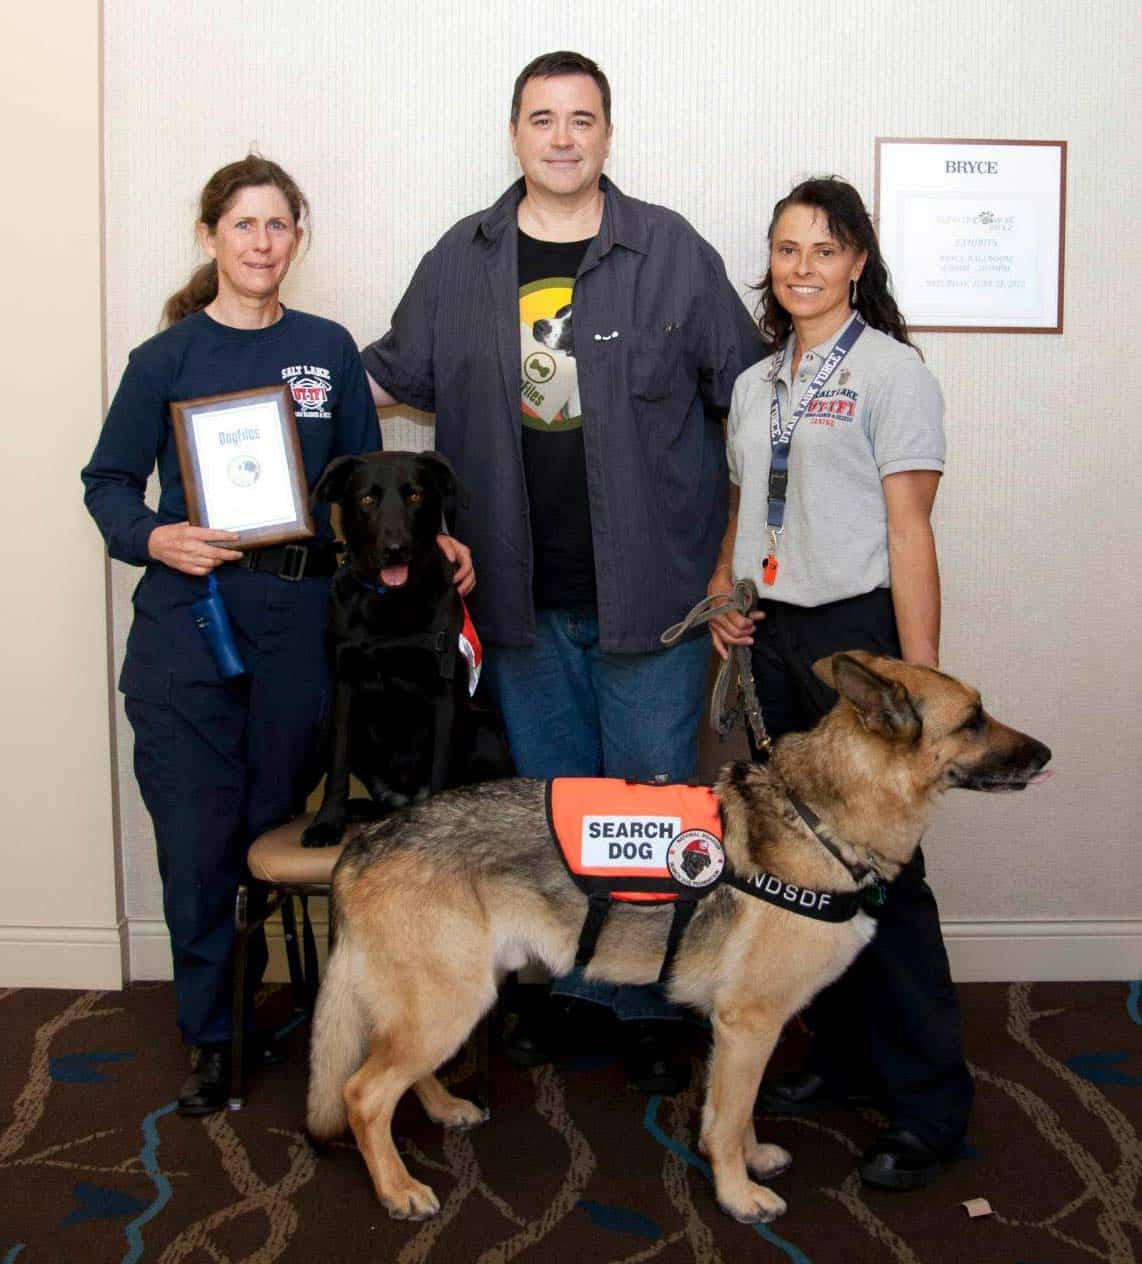 My Adventure At BlogPaws 2012 In Pictures